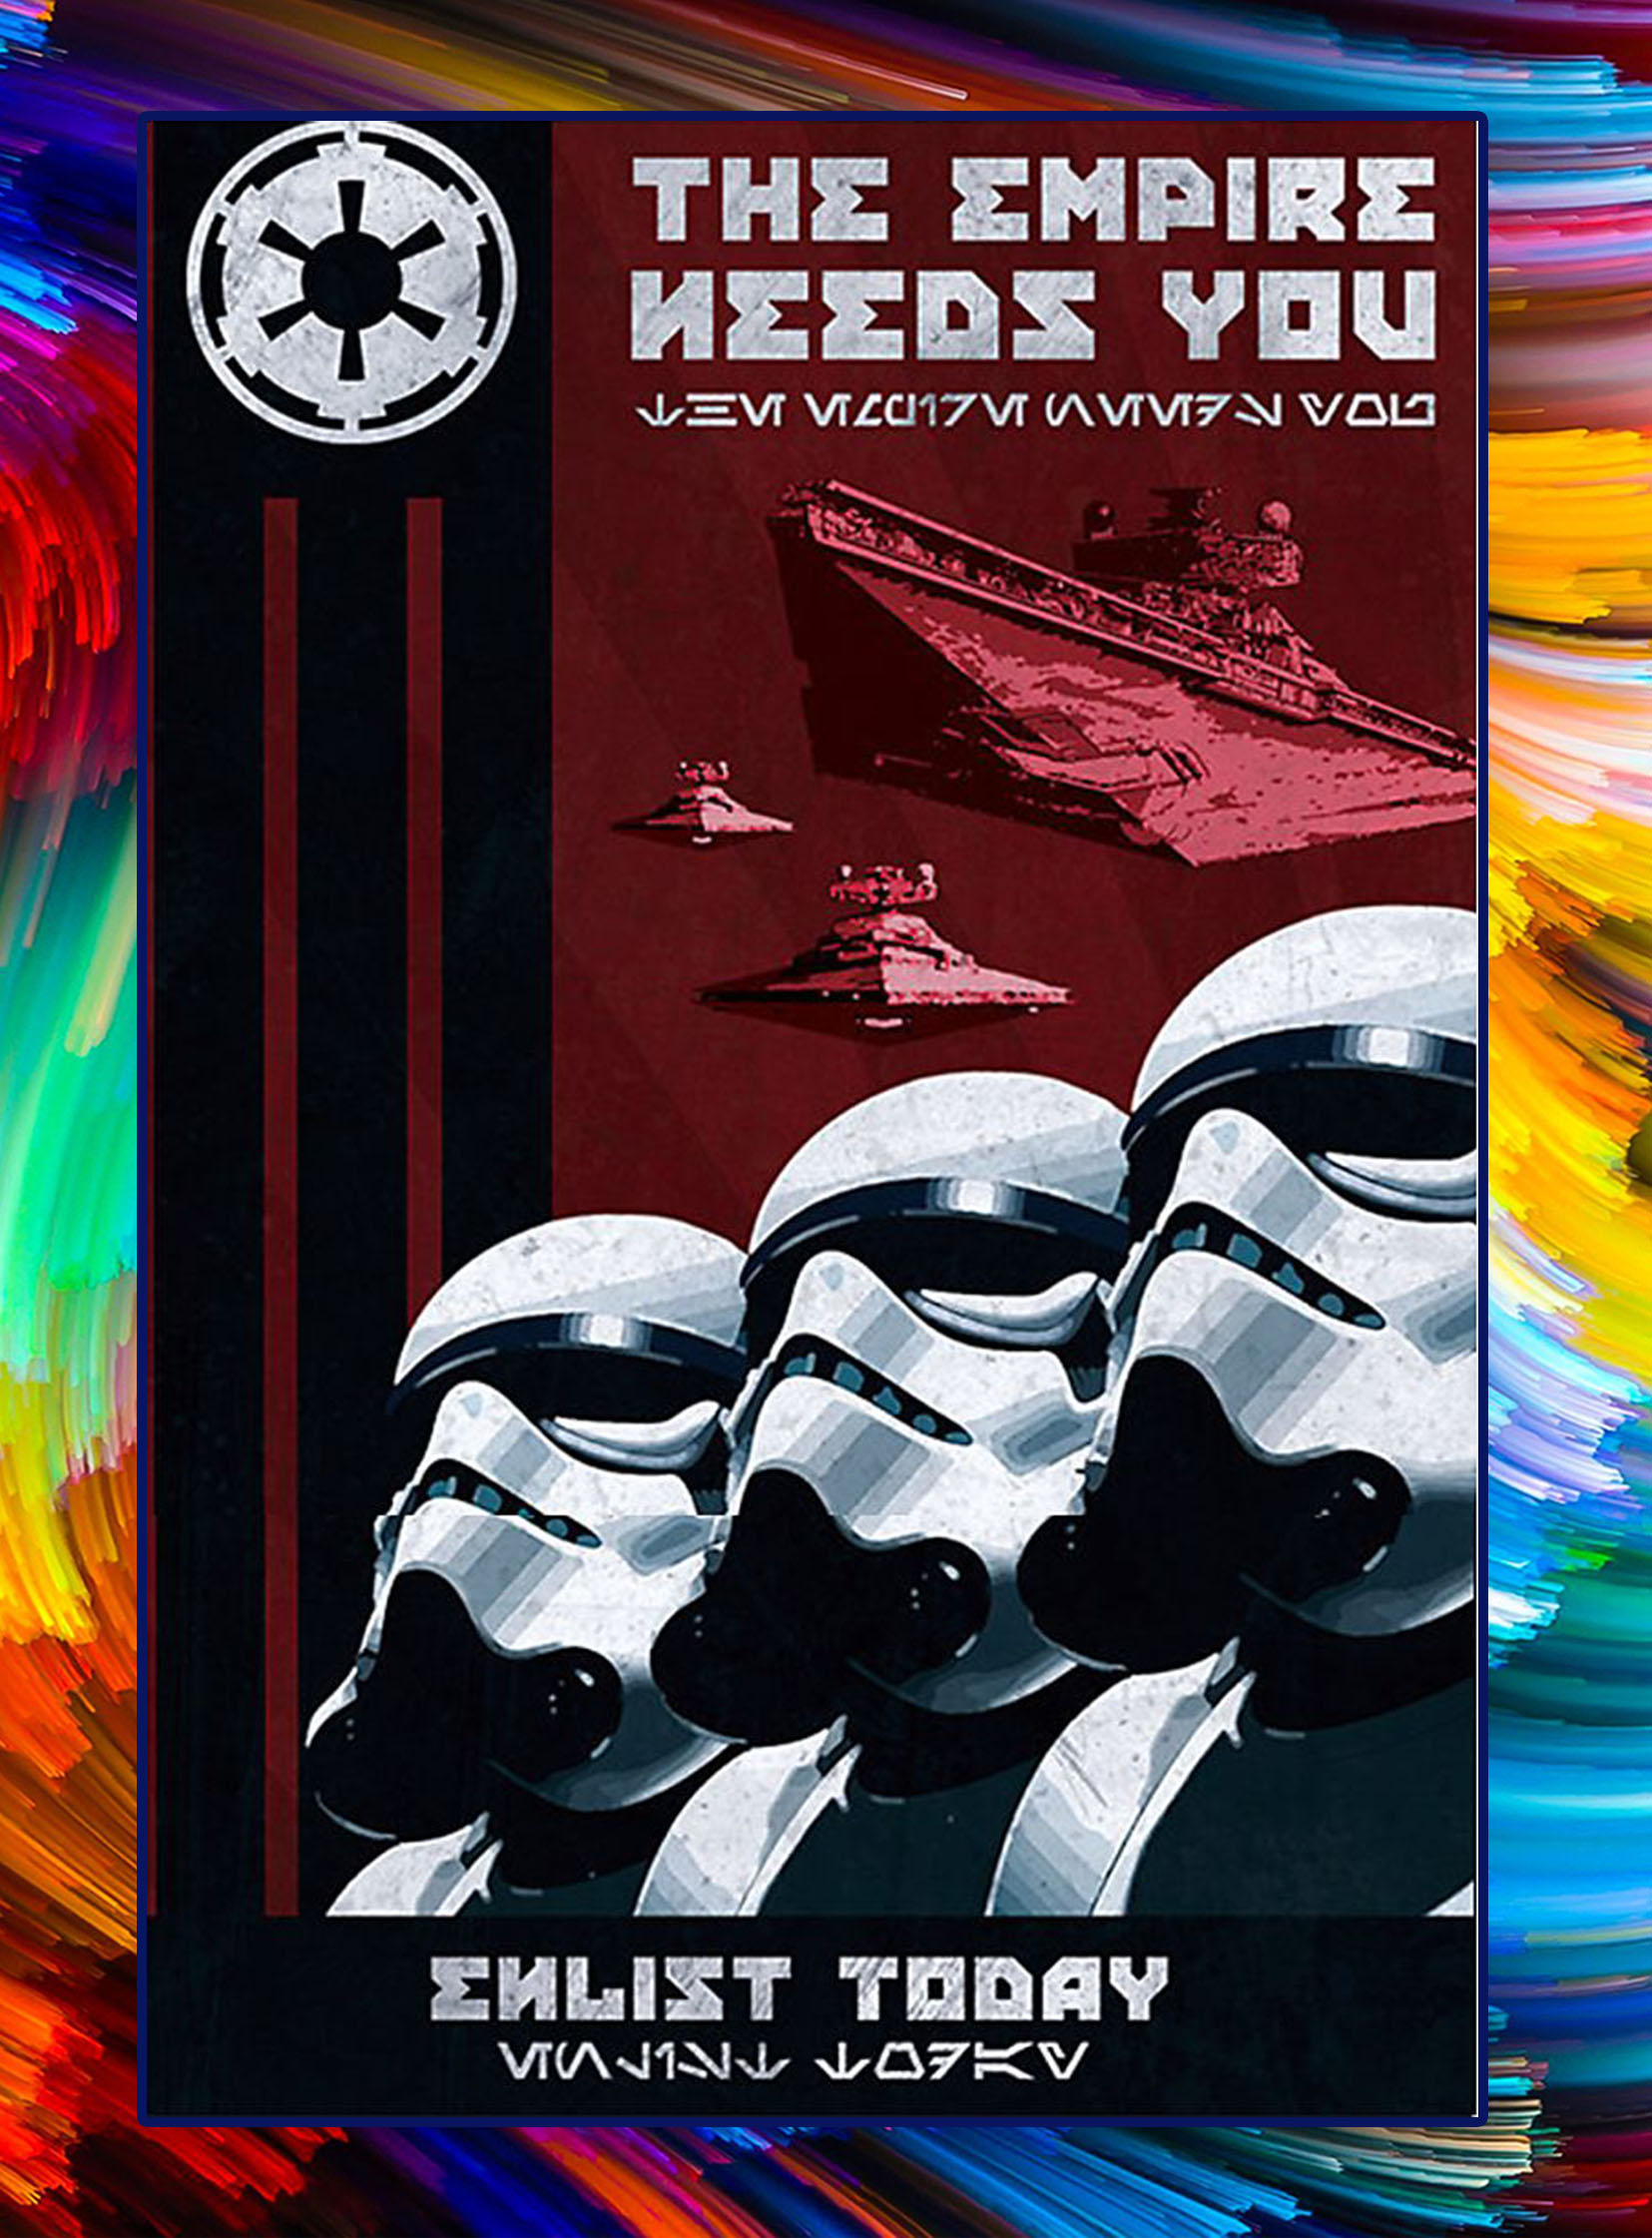 The empire needs you enlist today poster - A3